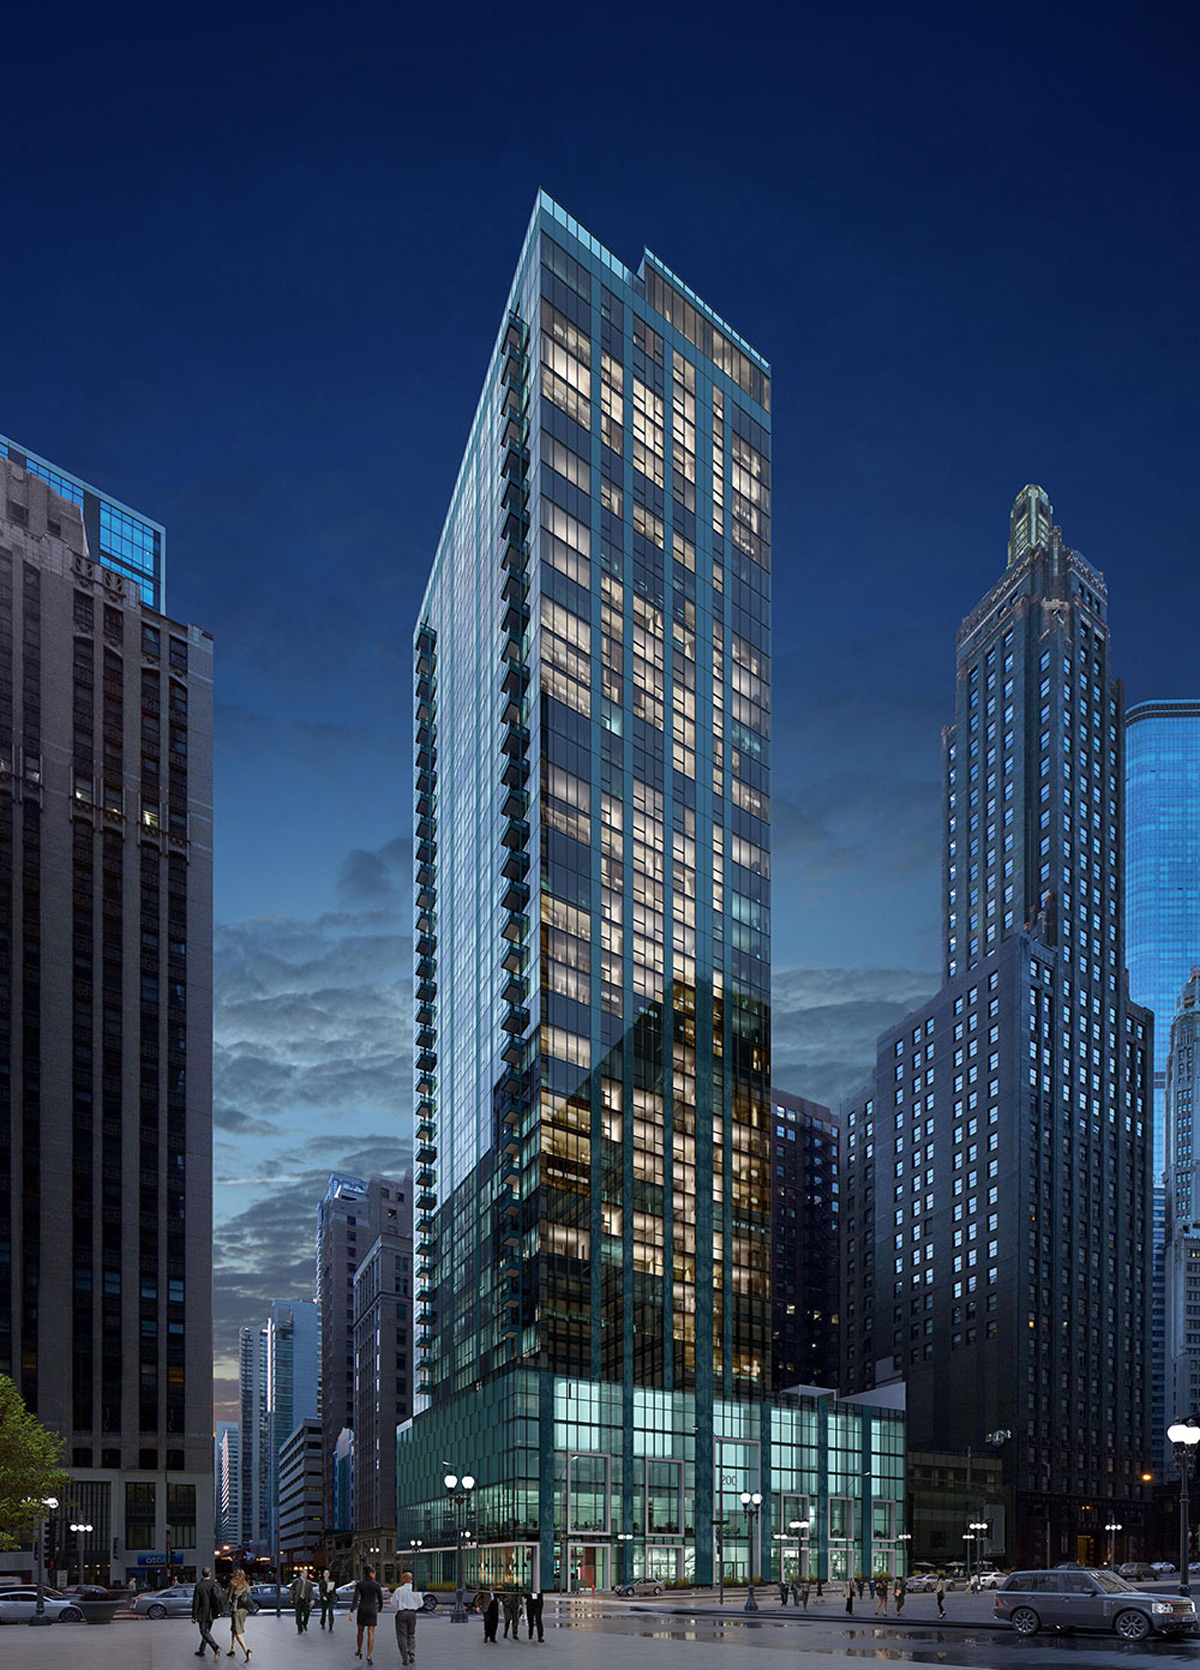 Mila chicago s newest luxury apartment project for Small luxury hotels chicago